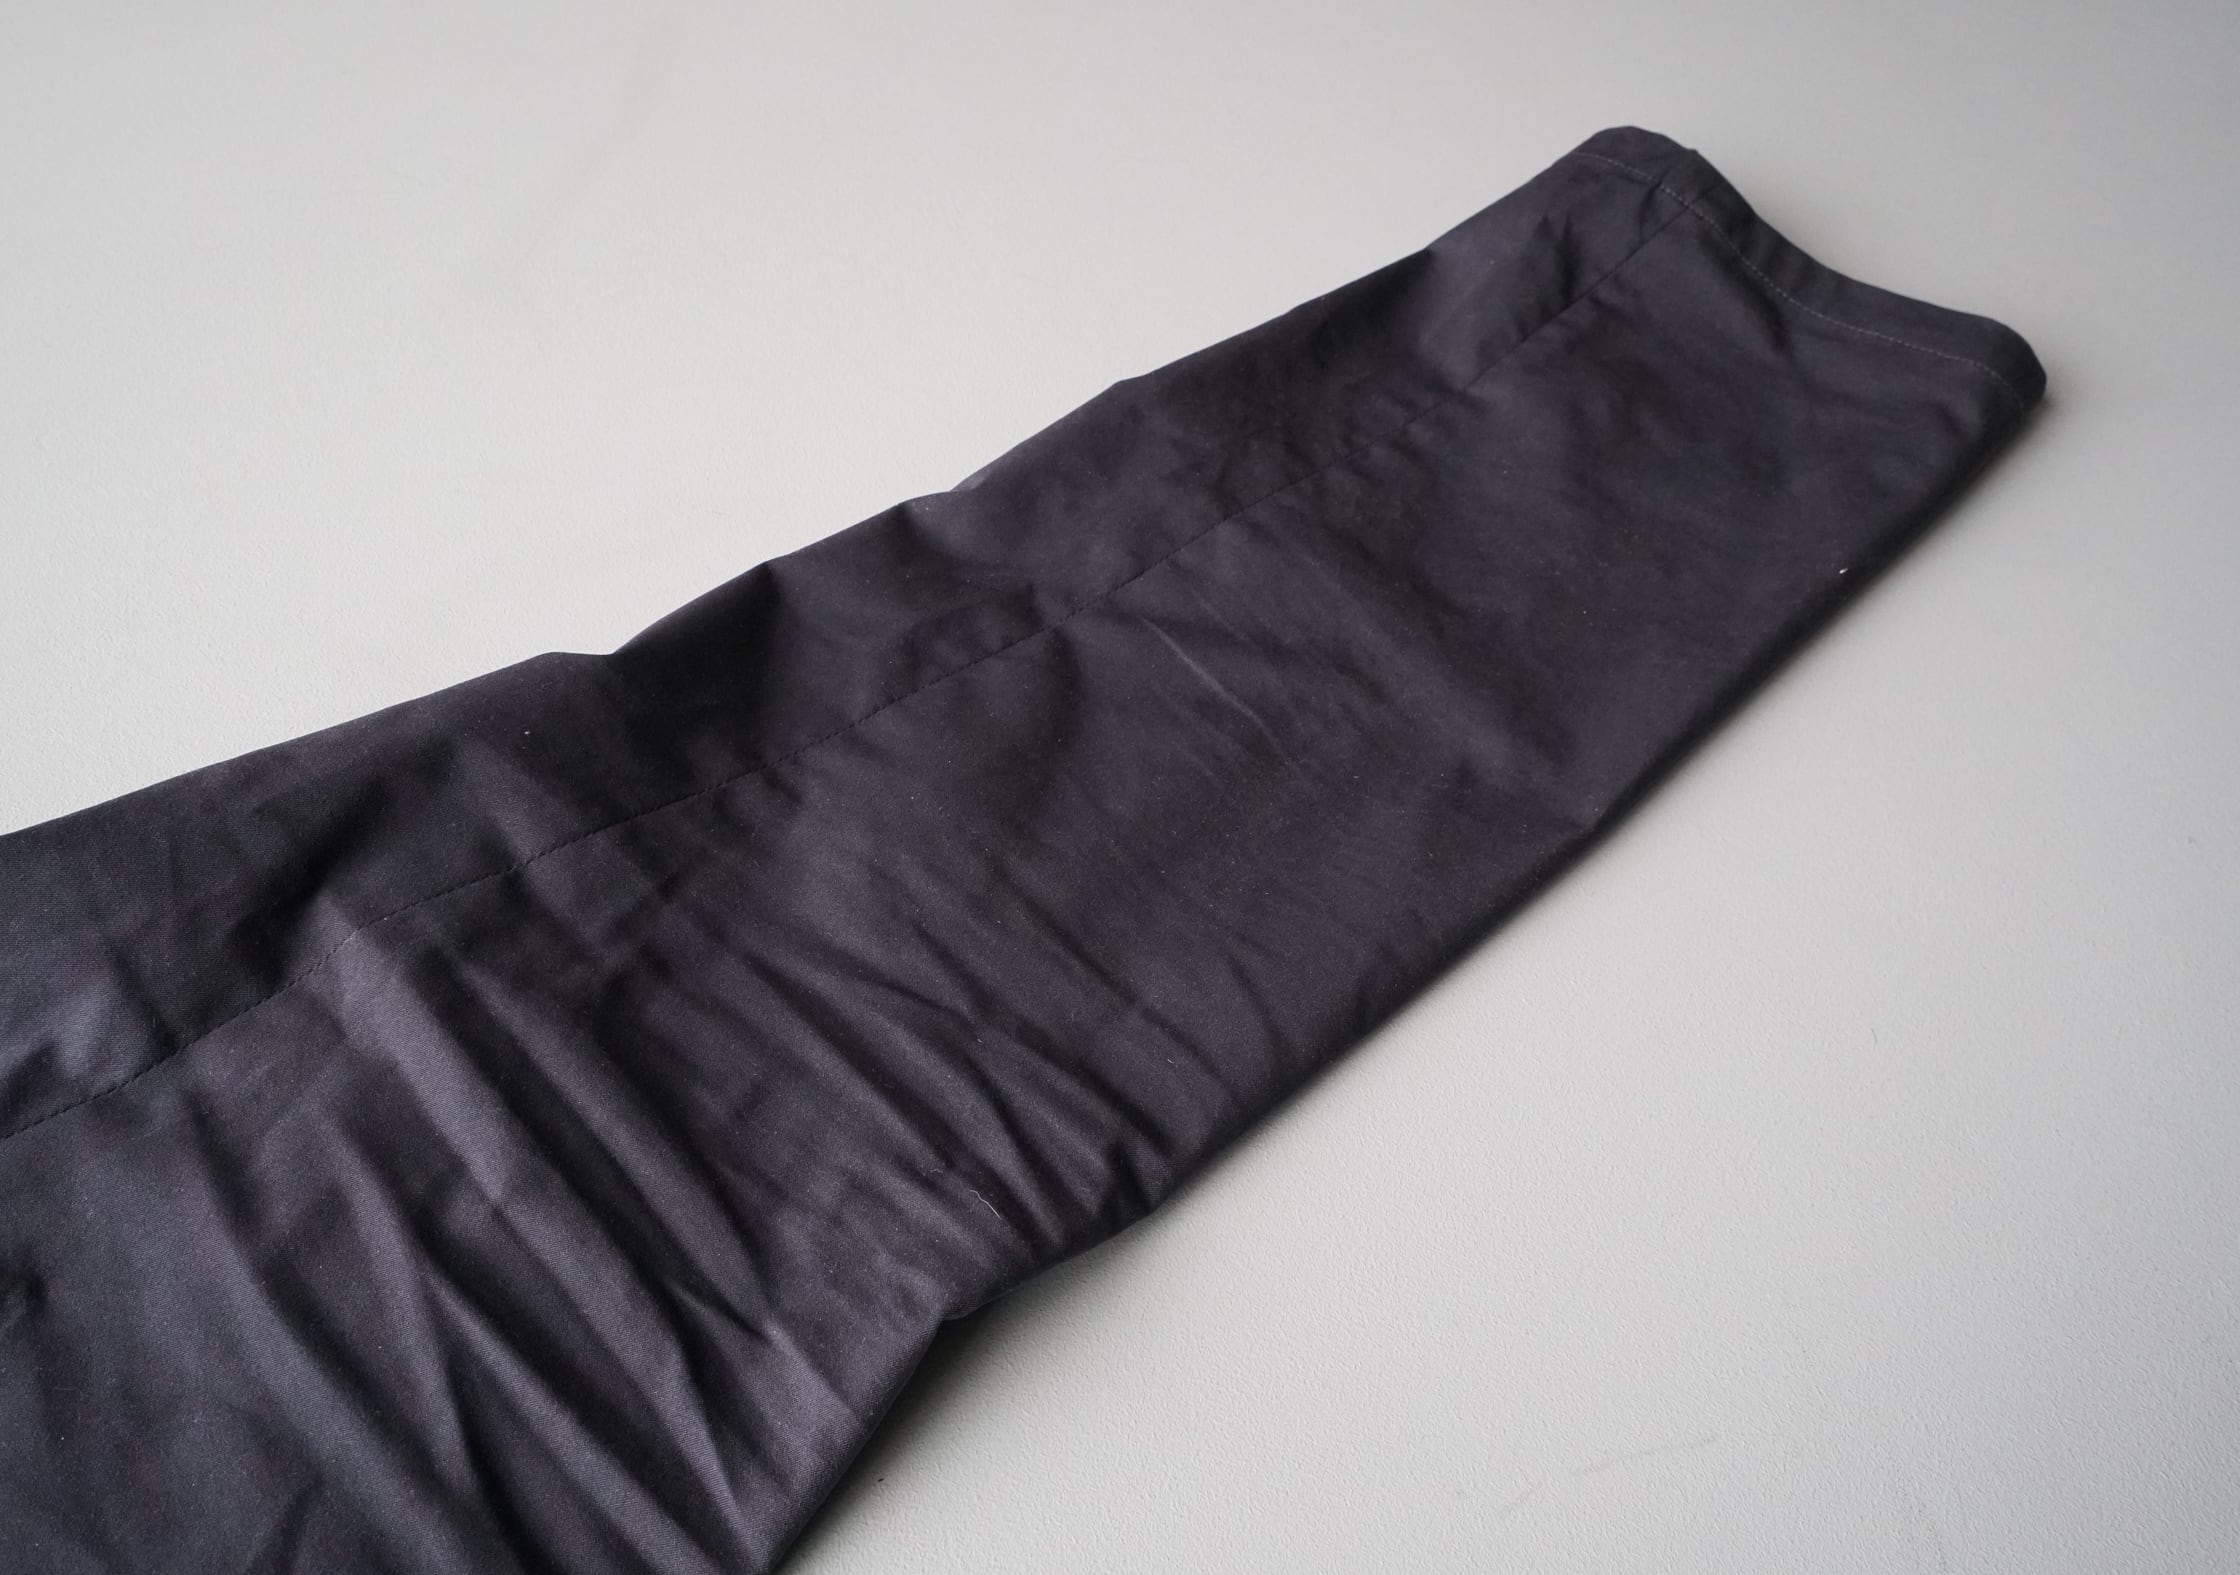 Bluffworks Chino Tailored Fit Wrinkles